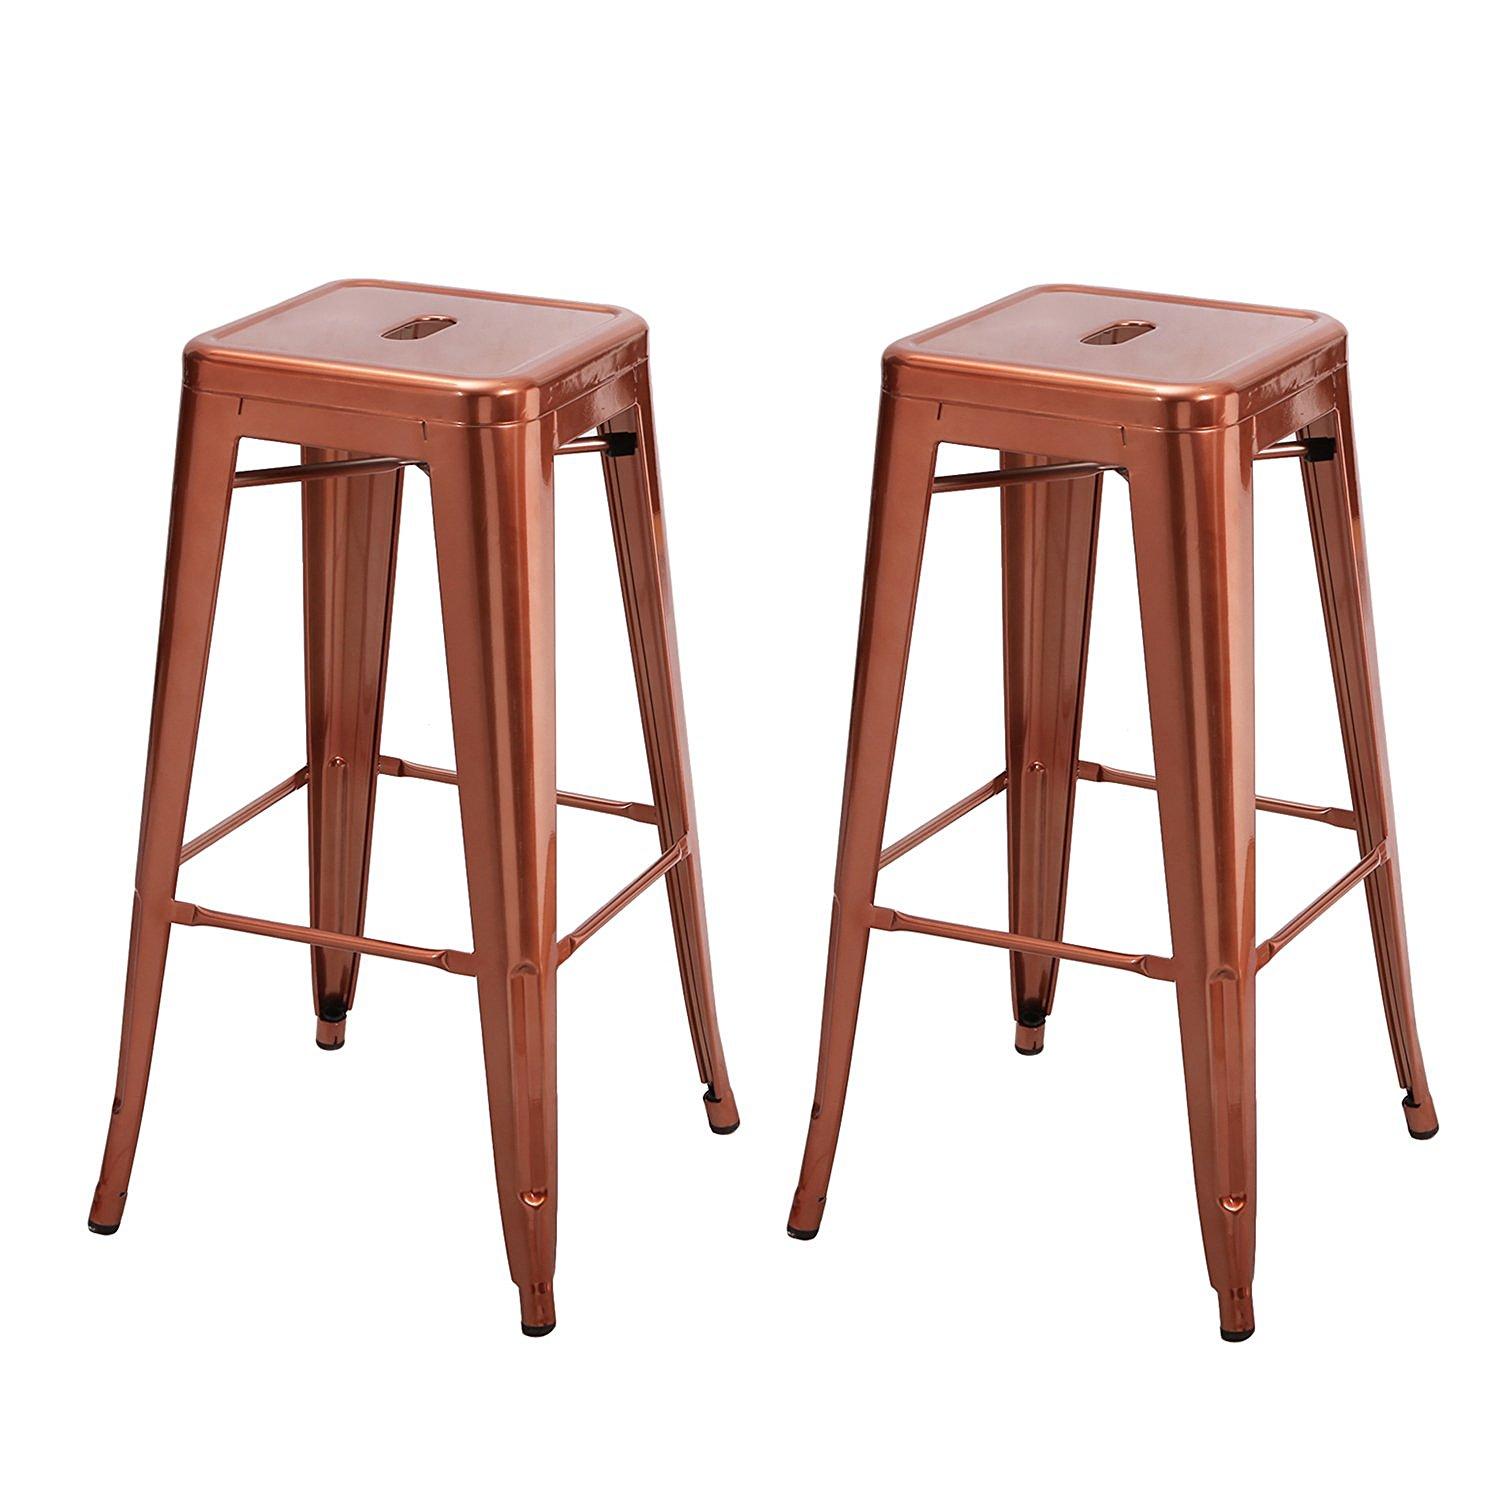 Homebeez 30 inches Metal Bar Stools Tolix Style Counter Height Stools Outdoor Industrial Bar Stools, Set of 2 (Glossy Gold Coffee)